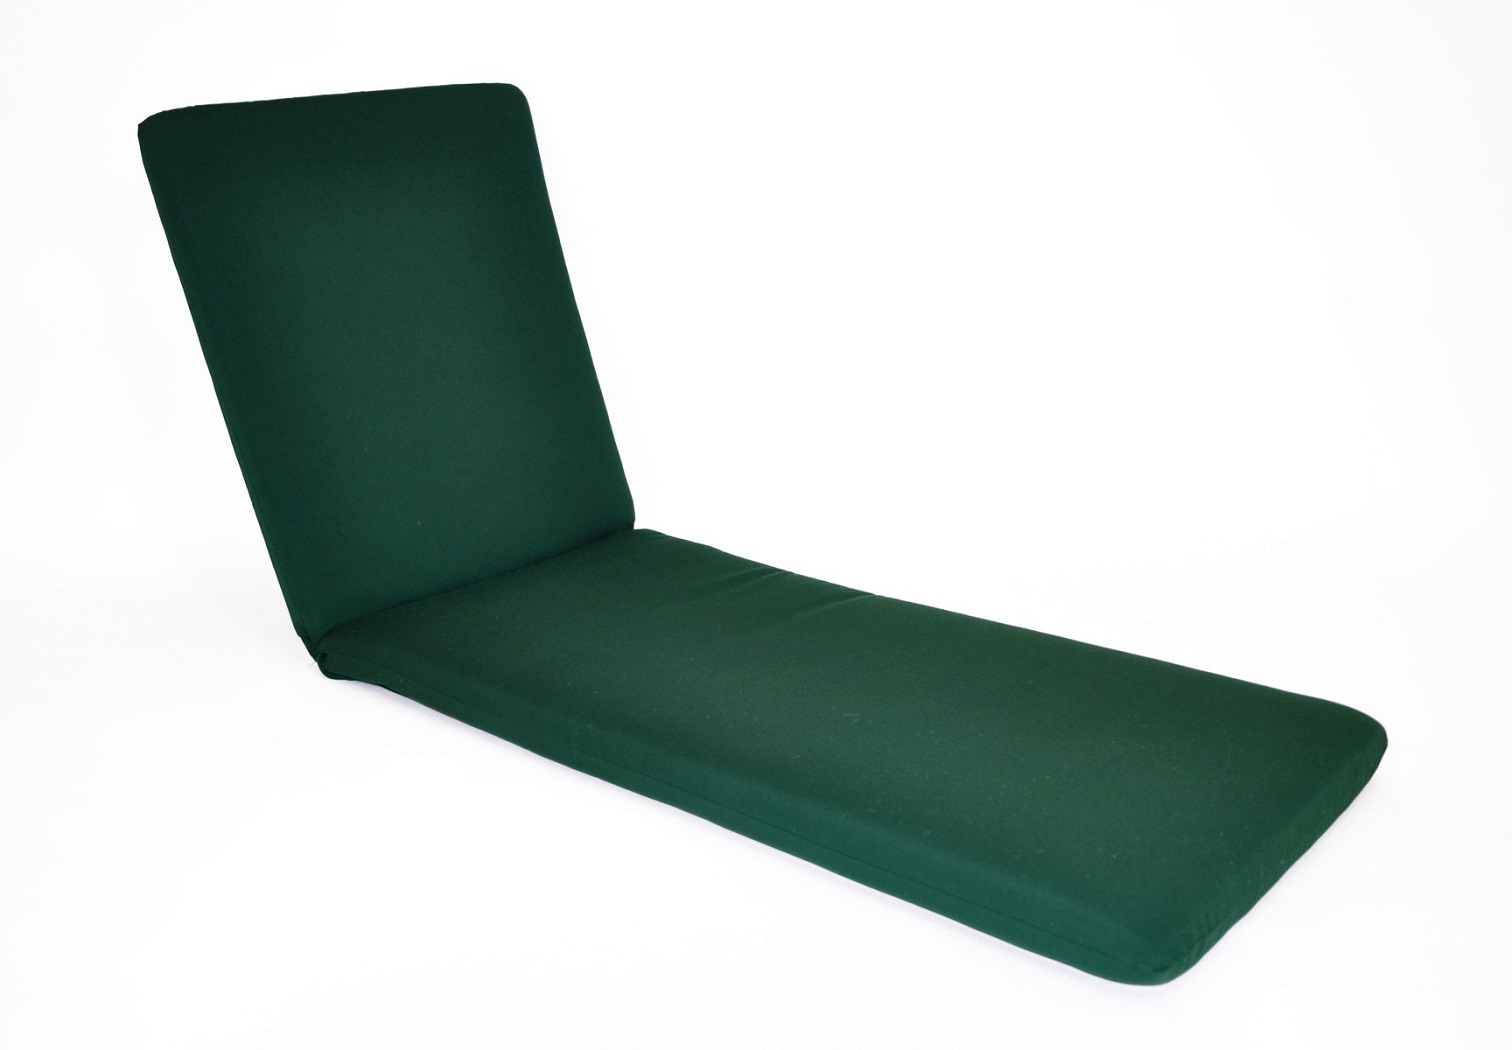 TIFFANY LOUNGER WITH GREEN